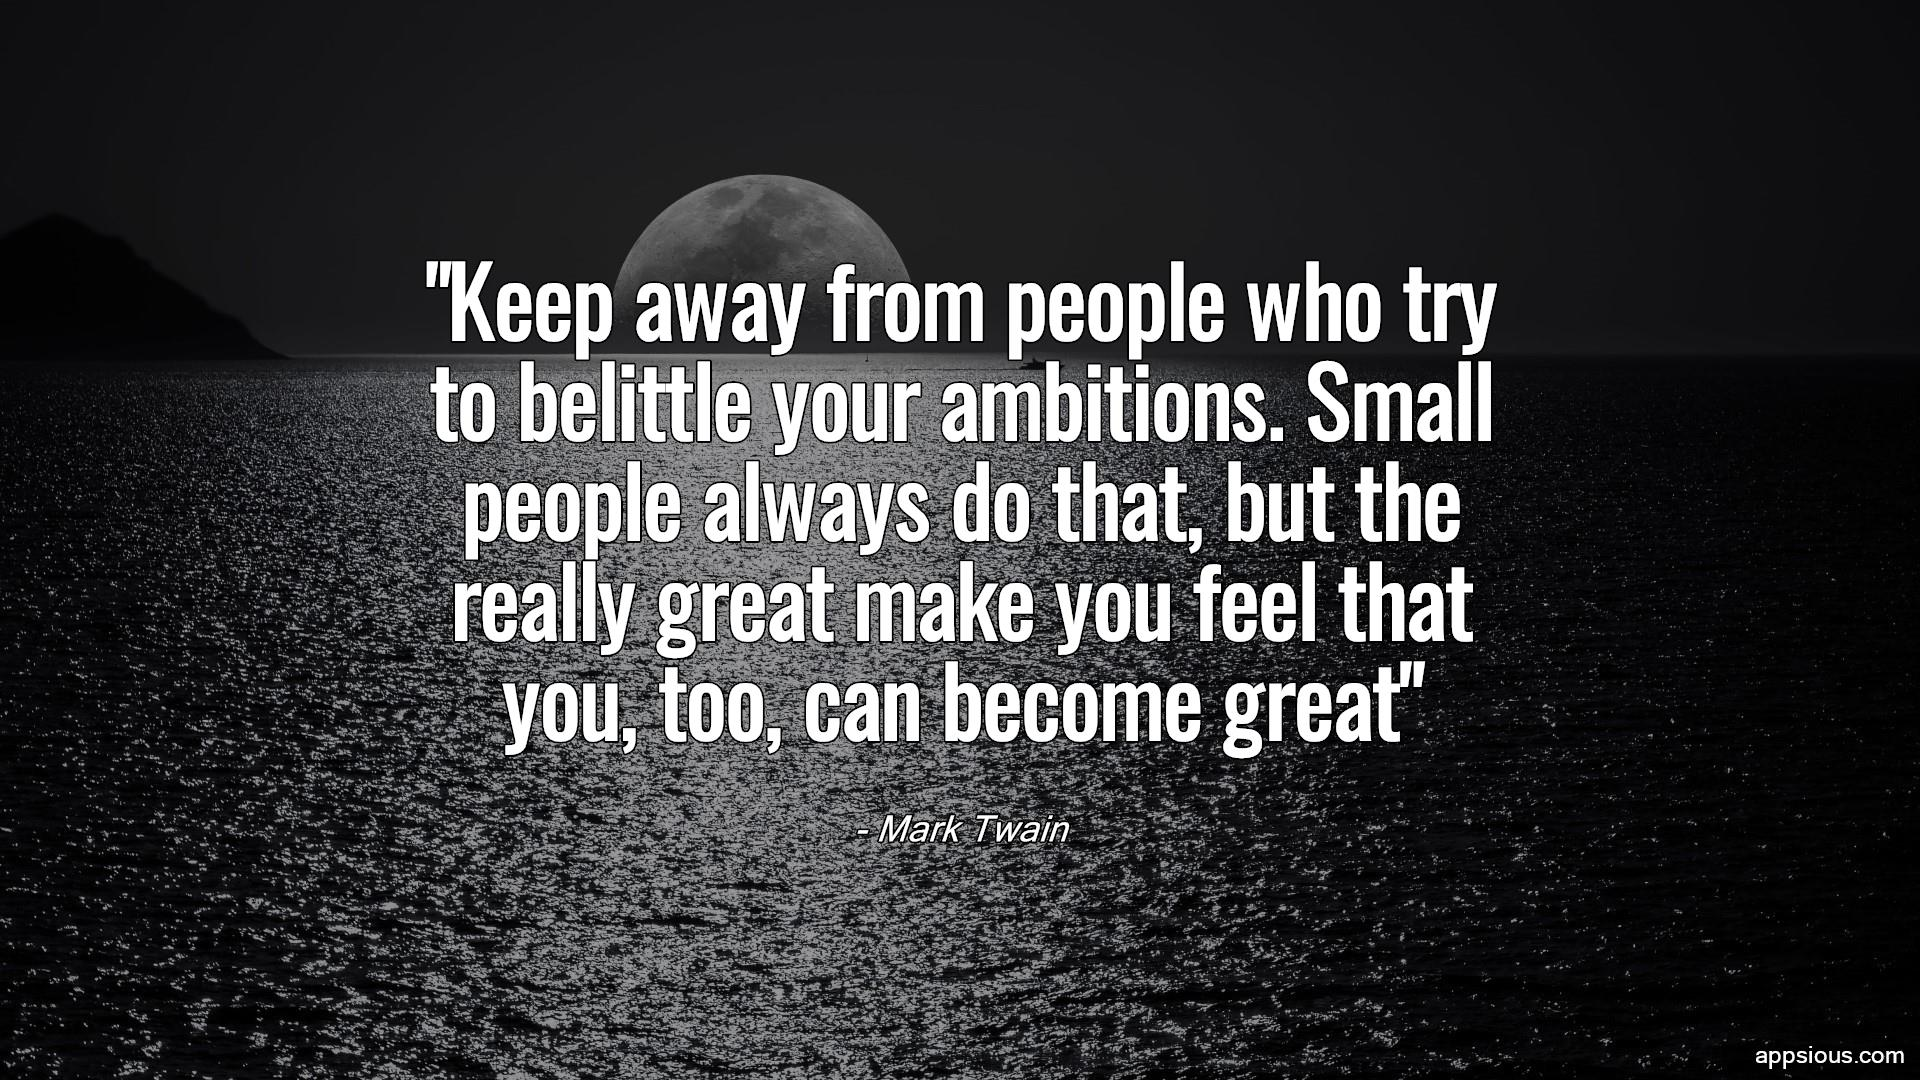 Keep away from people who try to belittle your ambitions. Small people always do that, but the really great make you feel that you, too, can become great